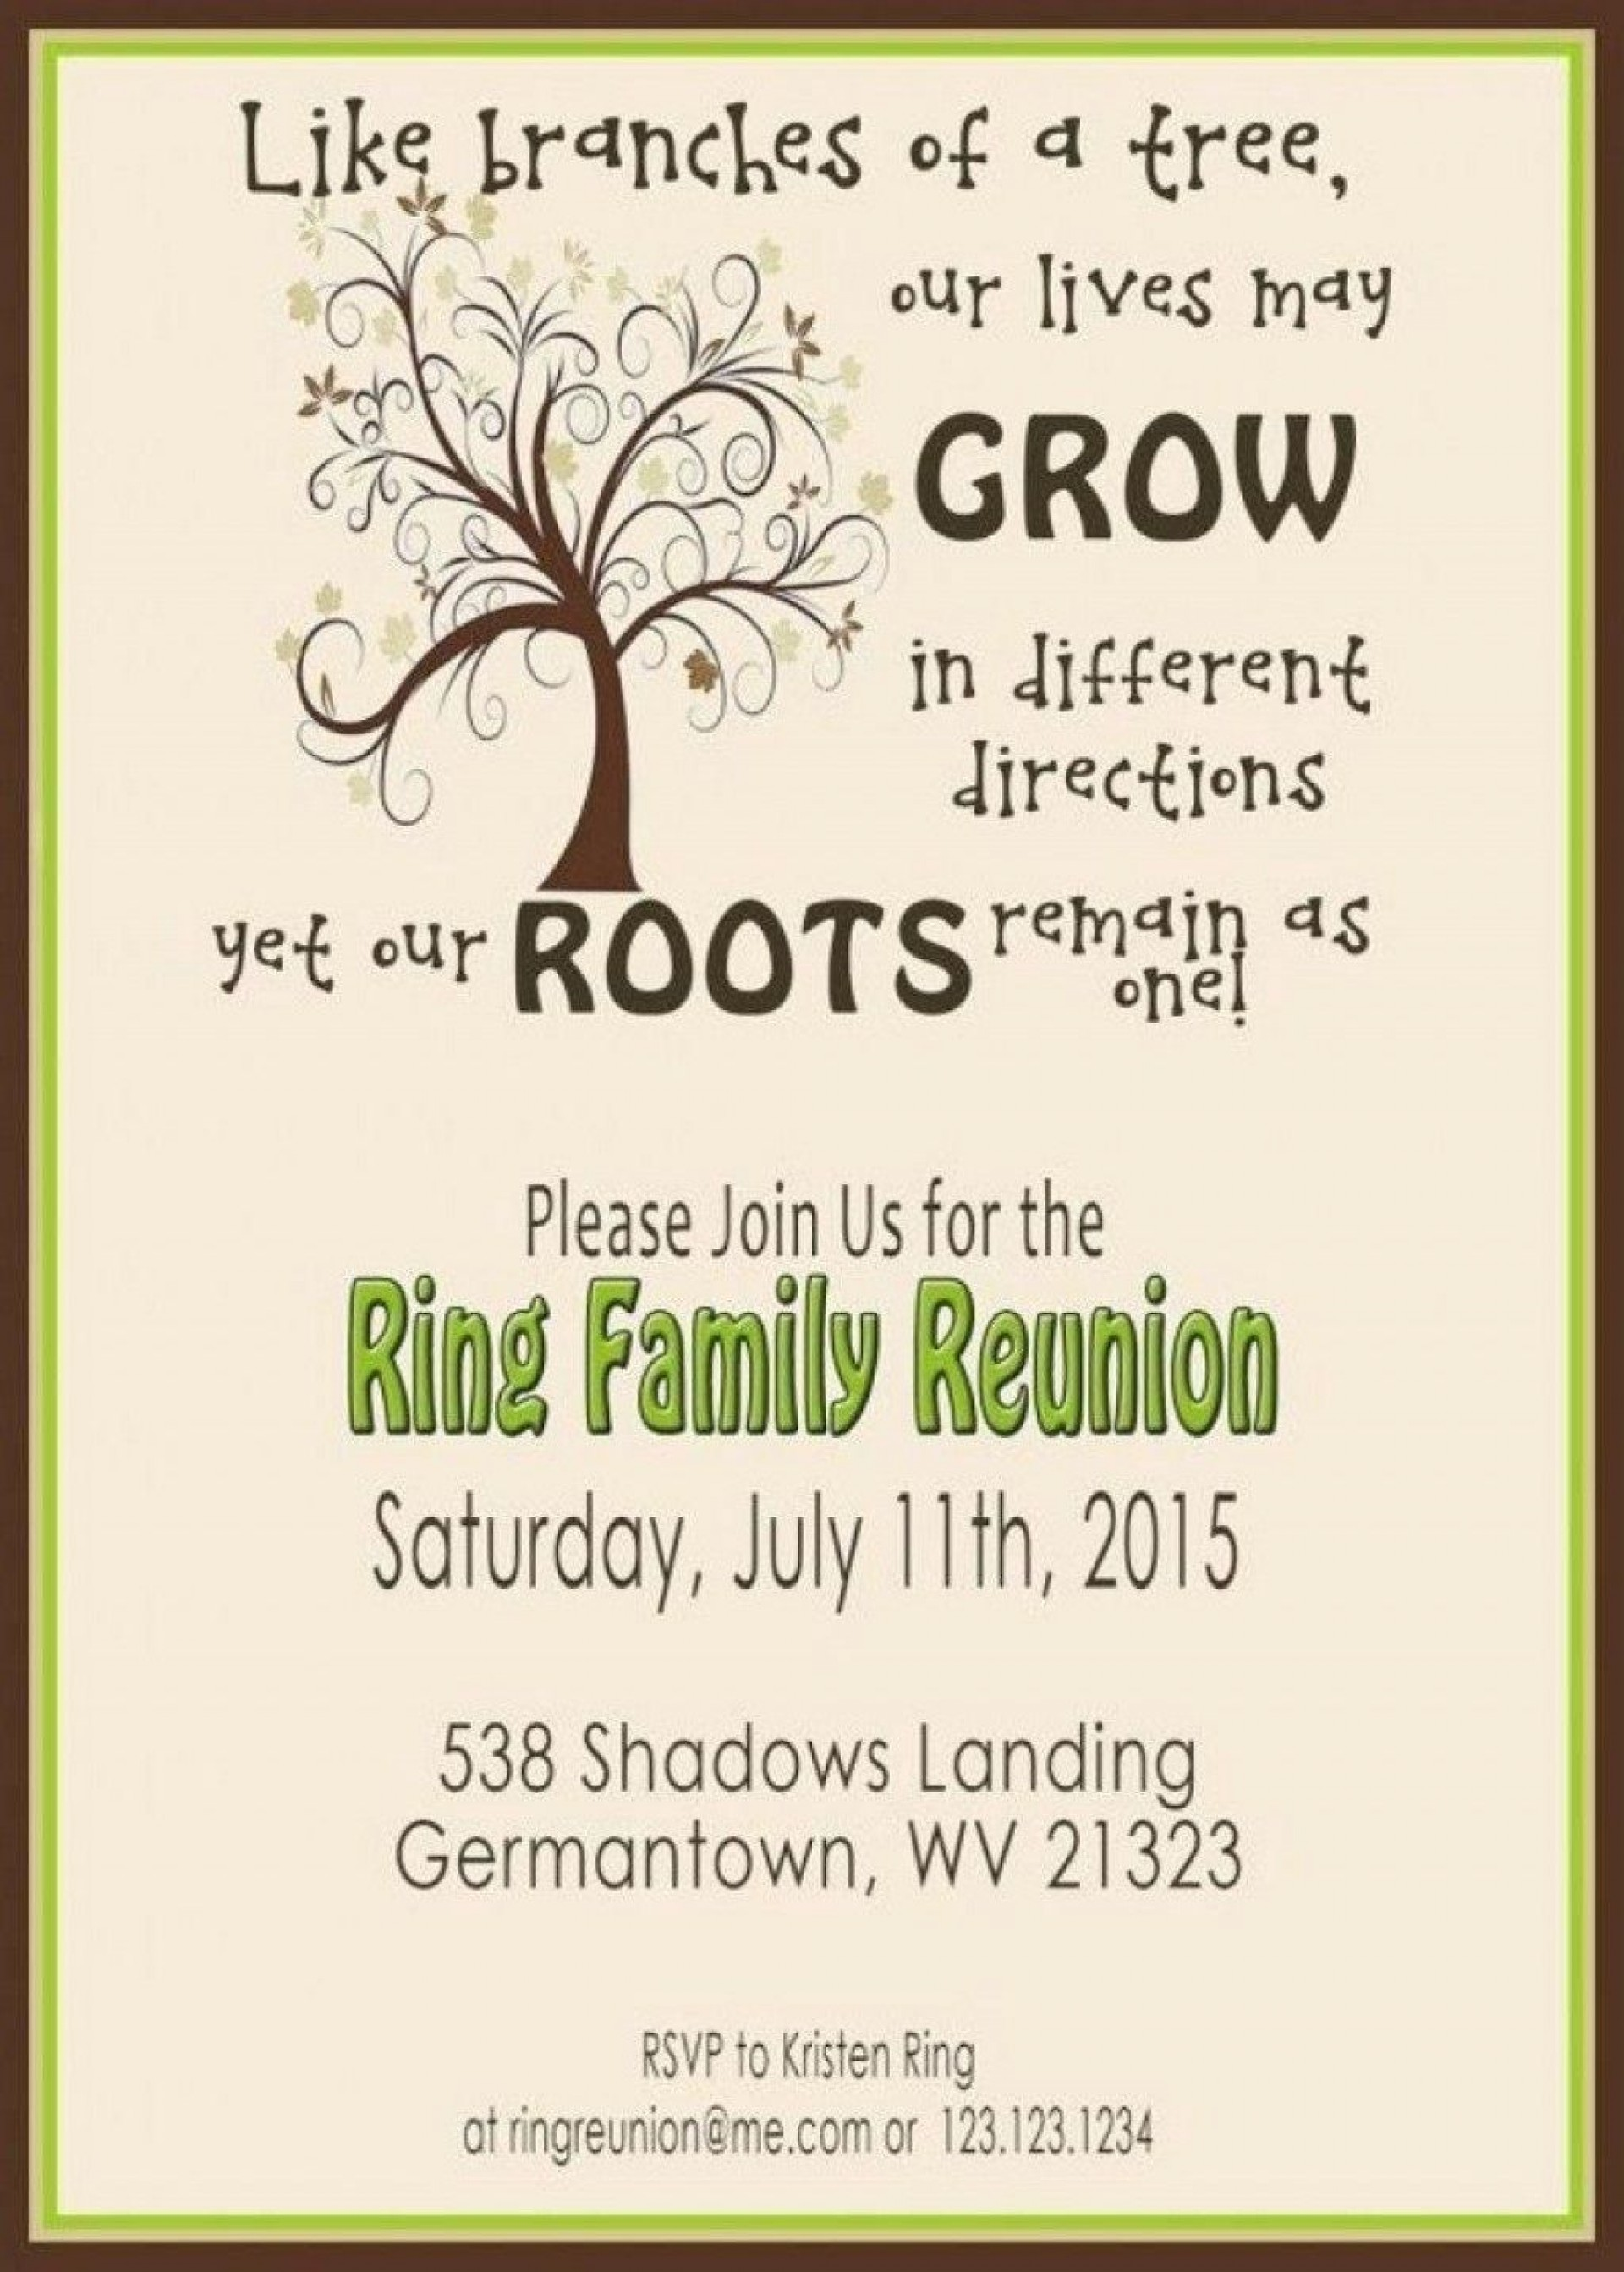 008 Staggering Free Family Reunion Flyer Template Word Concept 1920